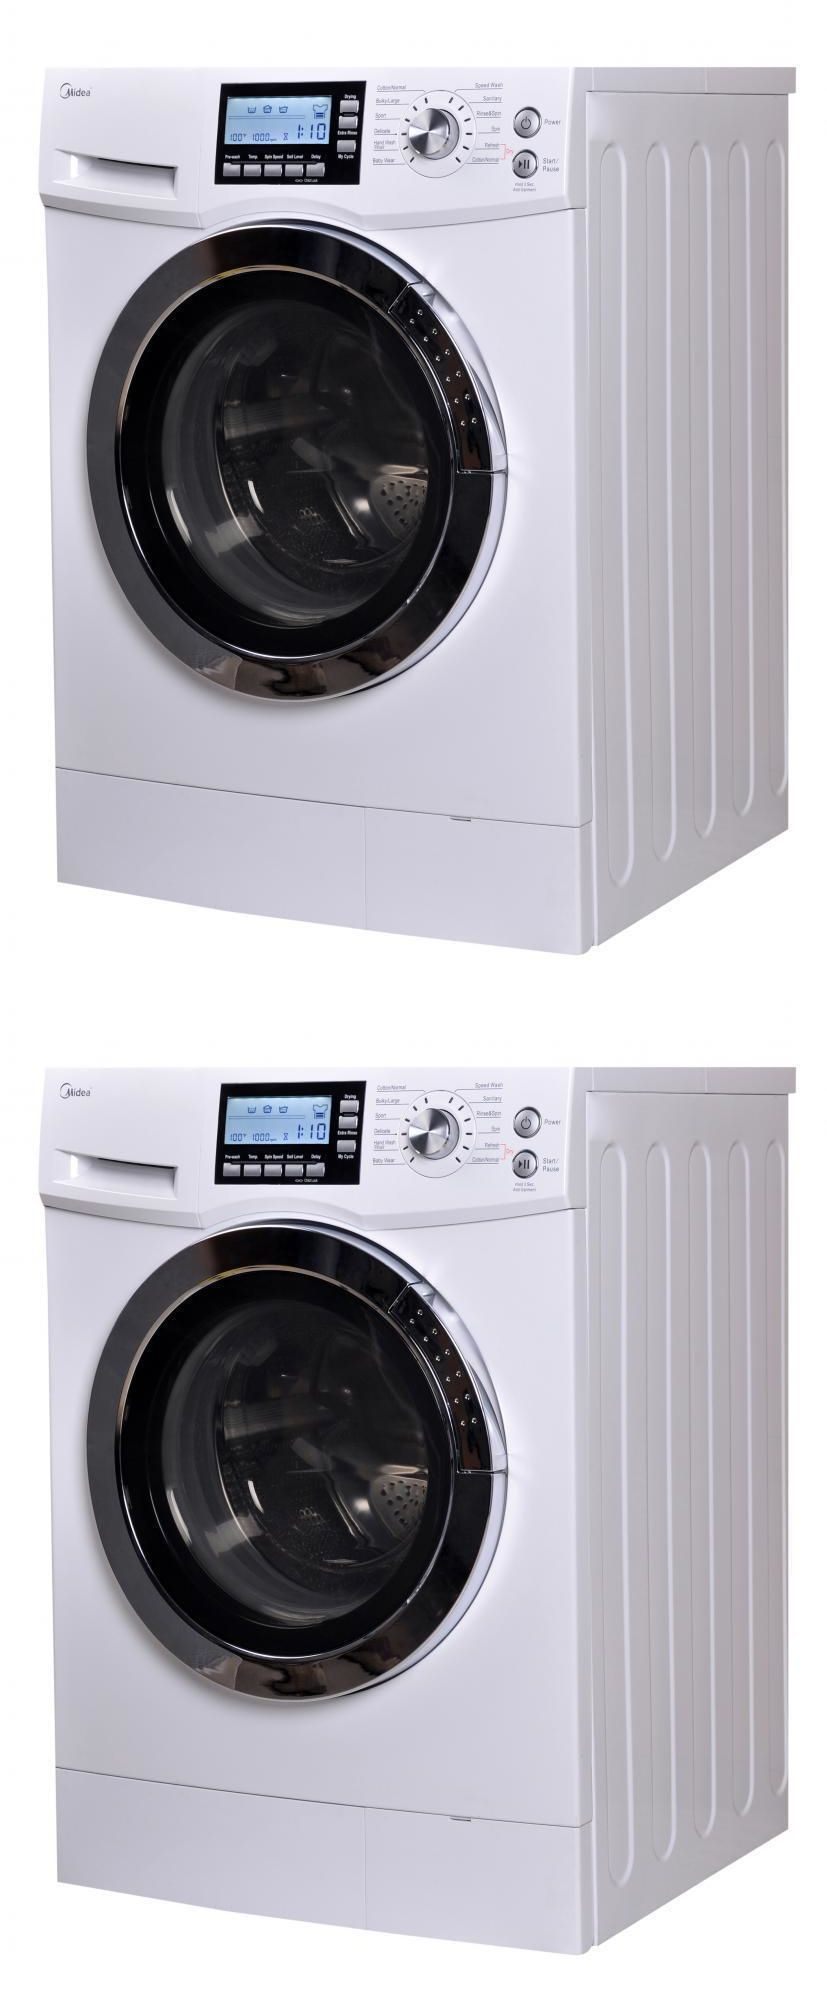 New Washer And Dryer Washer Dryer Combinations And Sets 71257 New Midea 2 Cu Ft